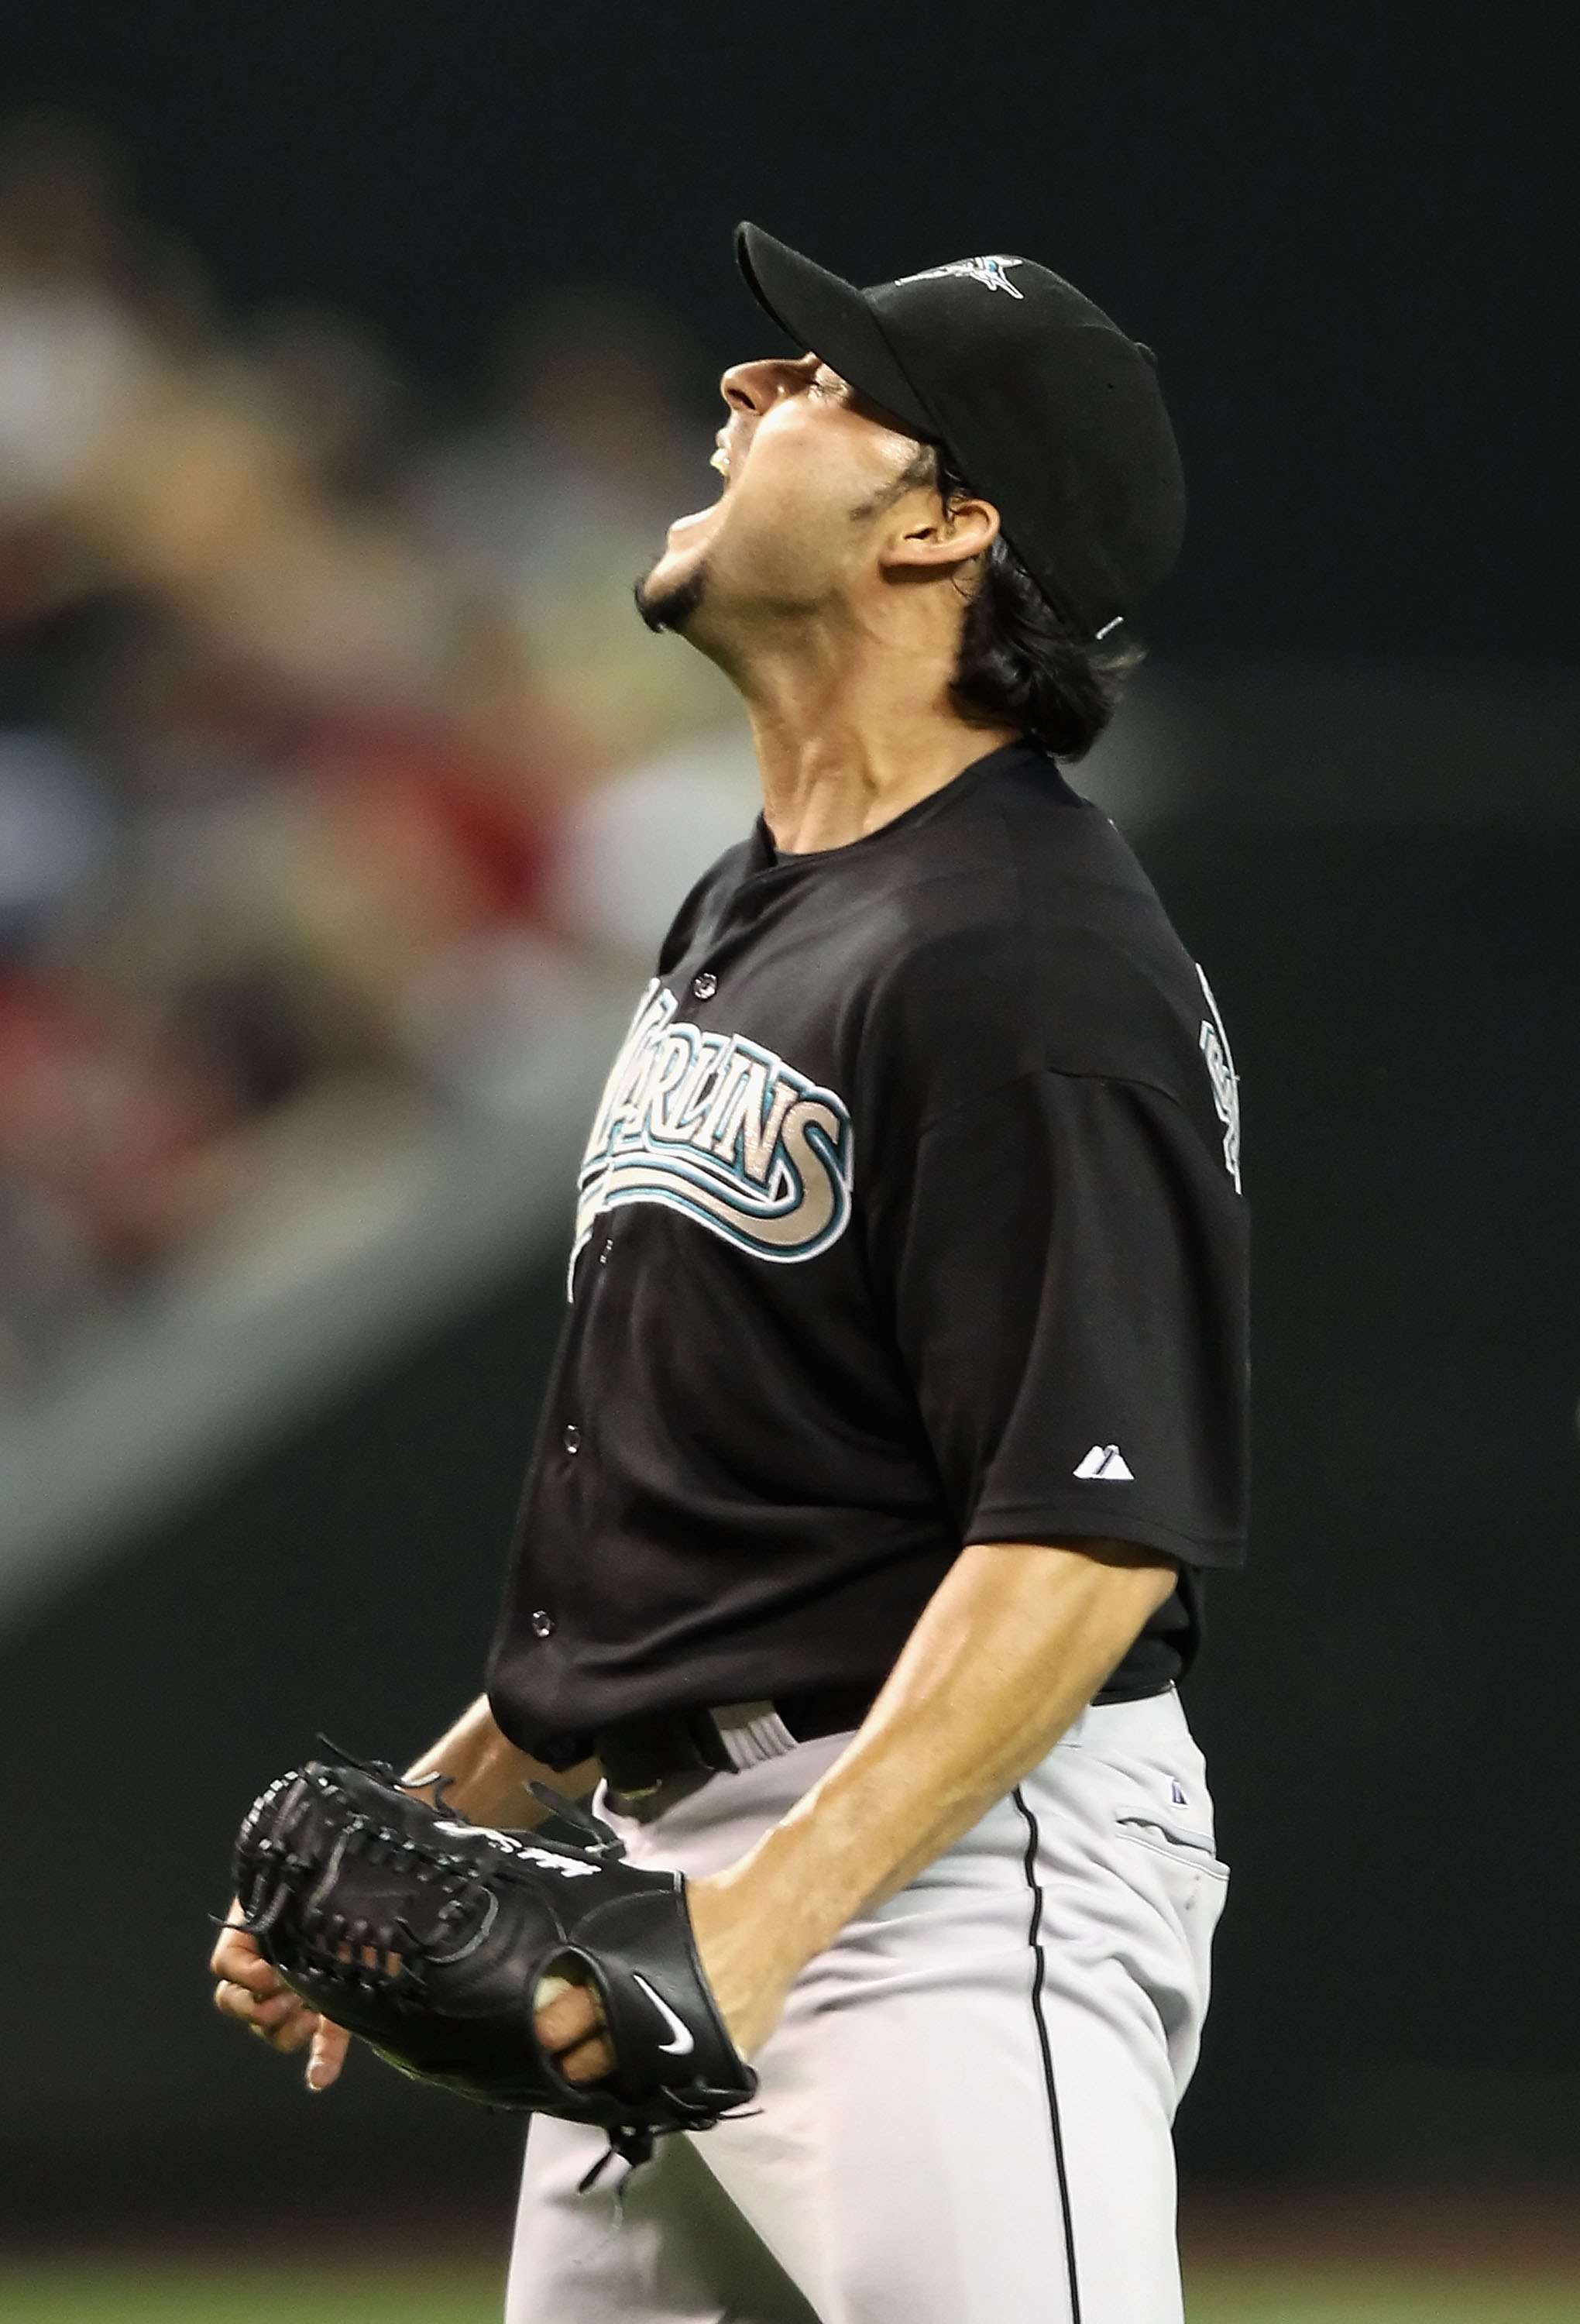 Marlins fans are going to have a lot to scream about in 2011.